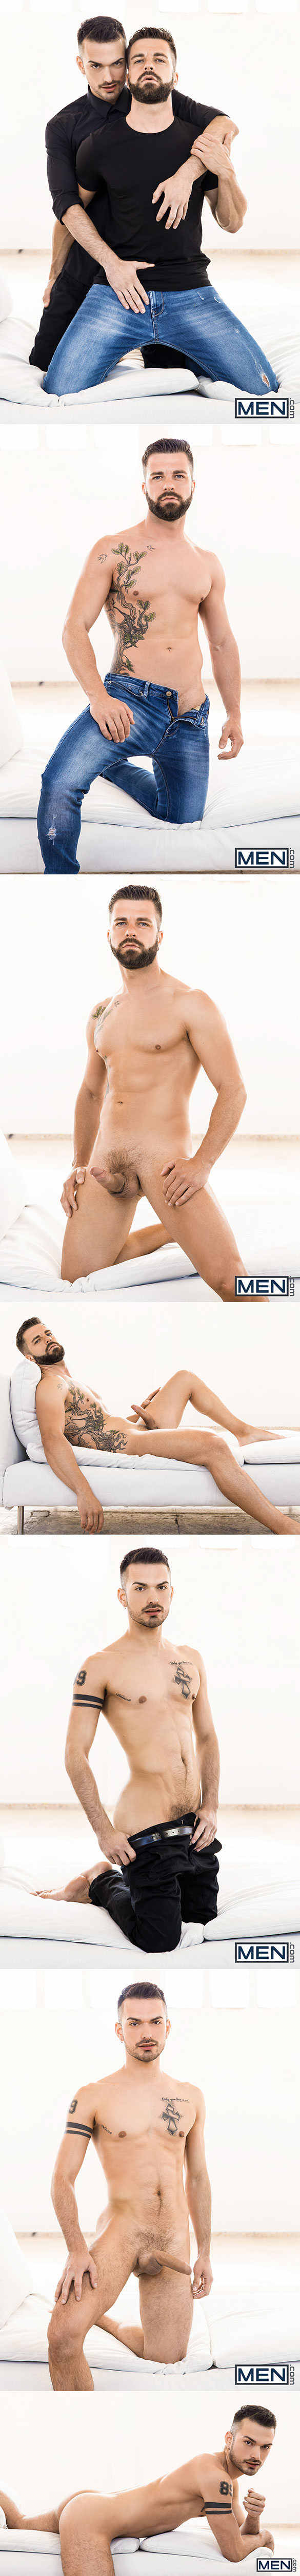 "Men.com: Hector de Silva fucks Jean Favre in ""The Parlor, Part 2"""